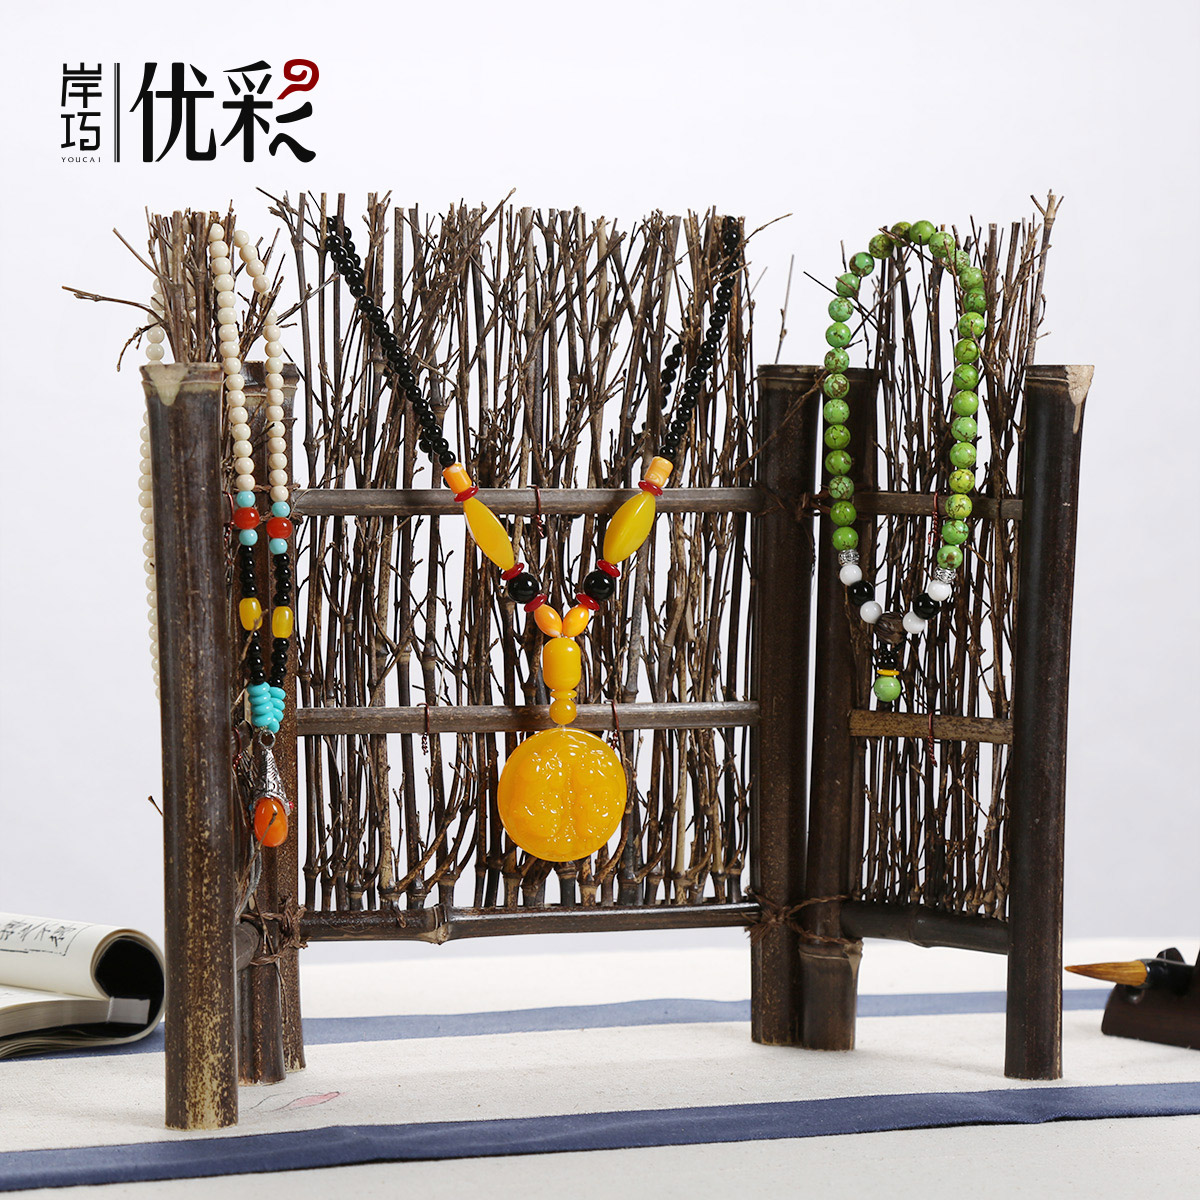 Excellent color rustic style creative jewelry rack bracelet rosary beads ornaments props wind quaint hand woven screens